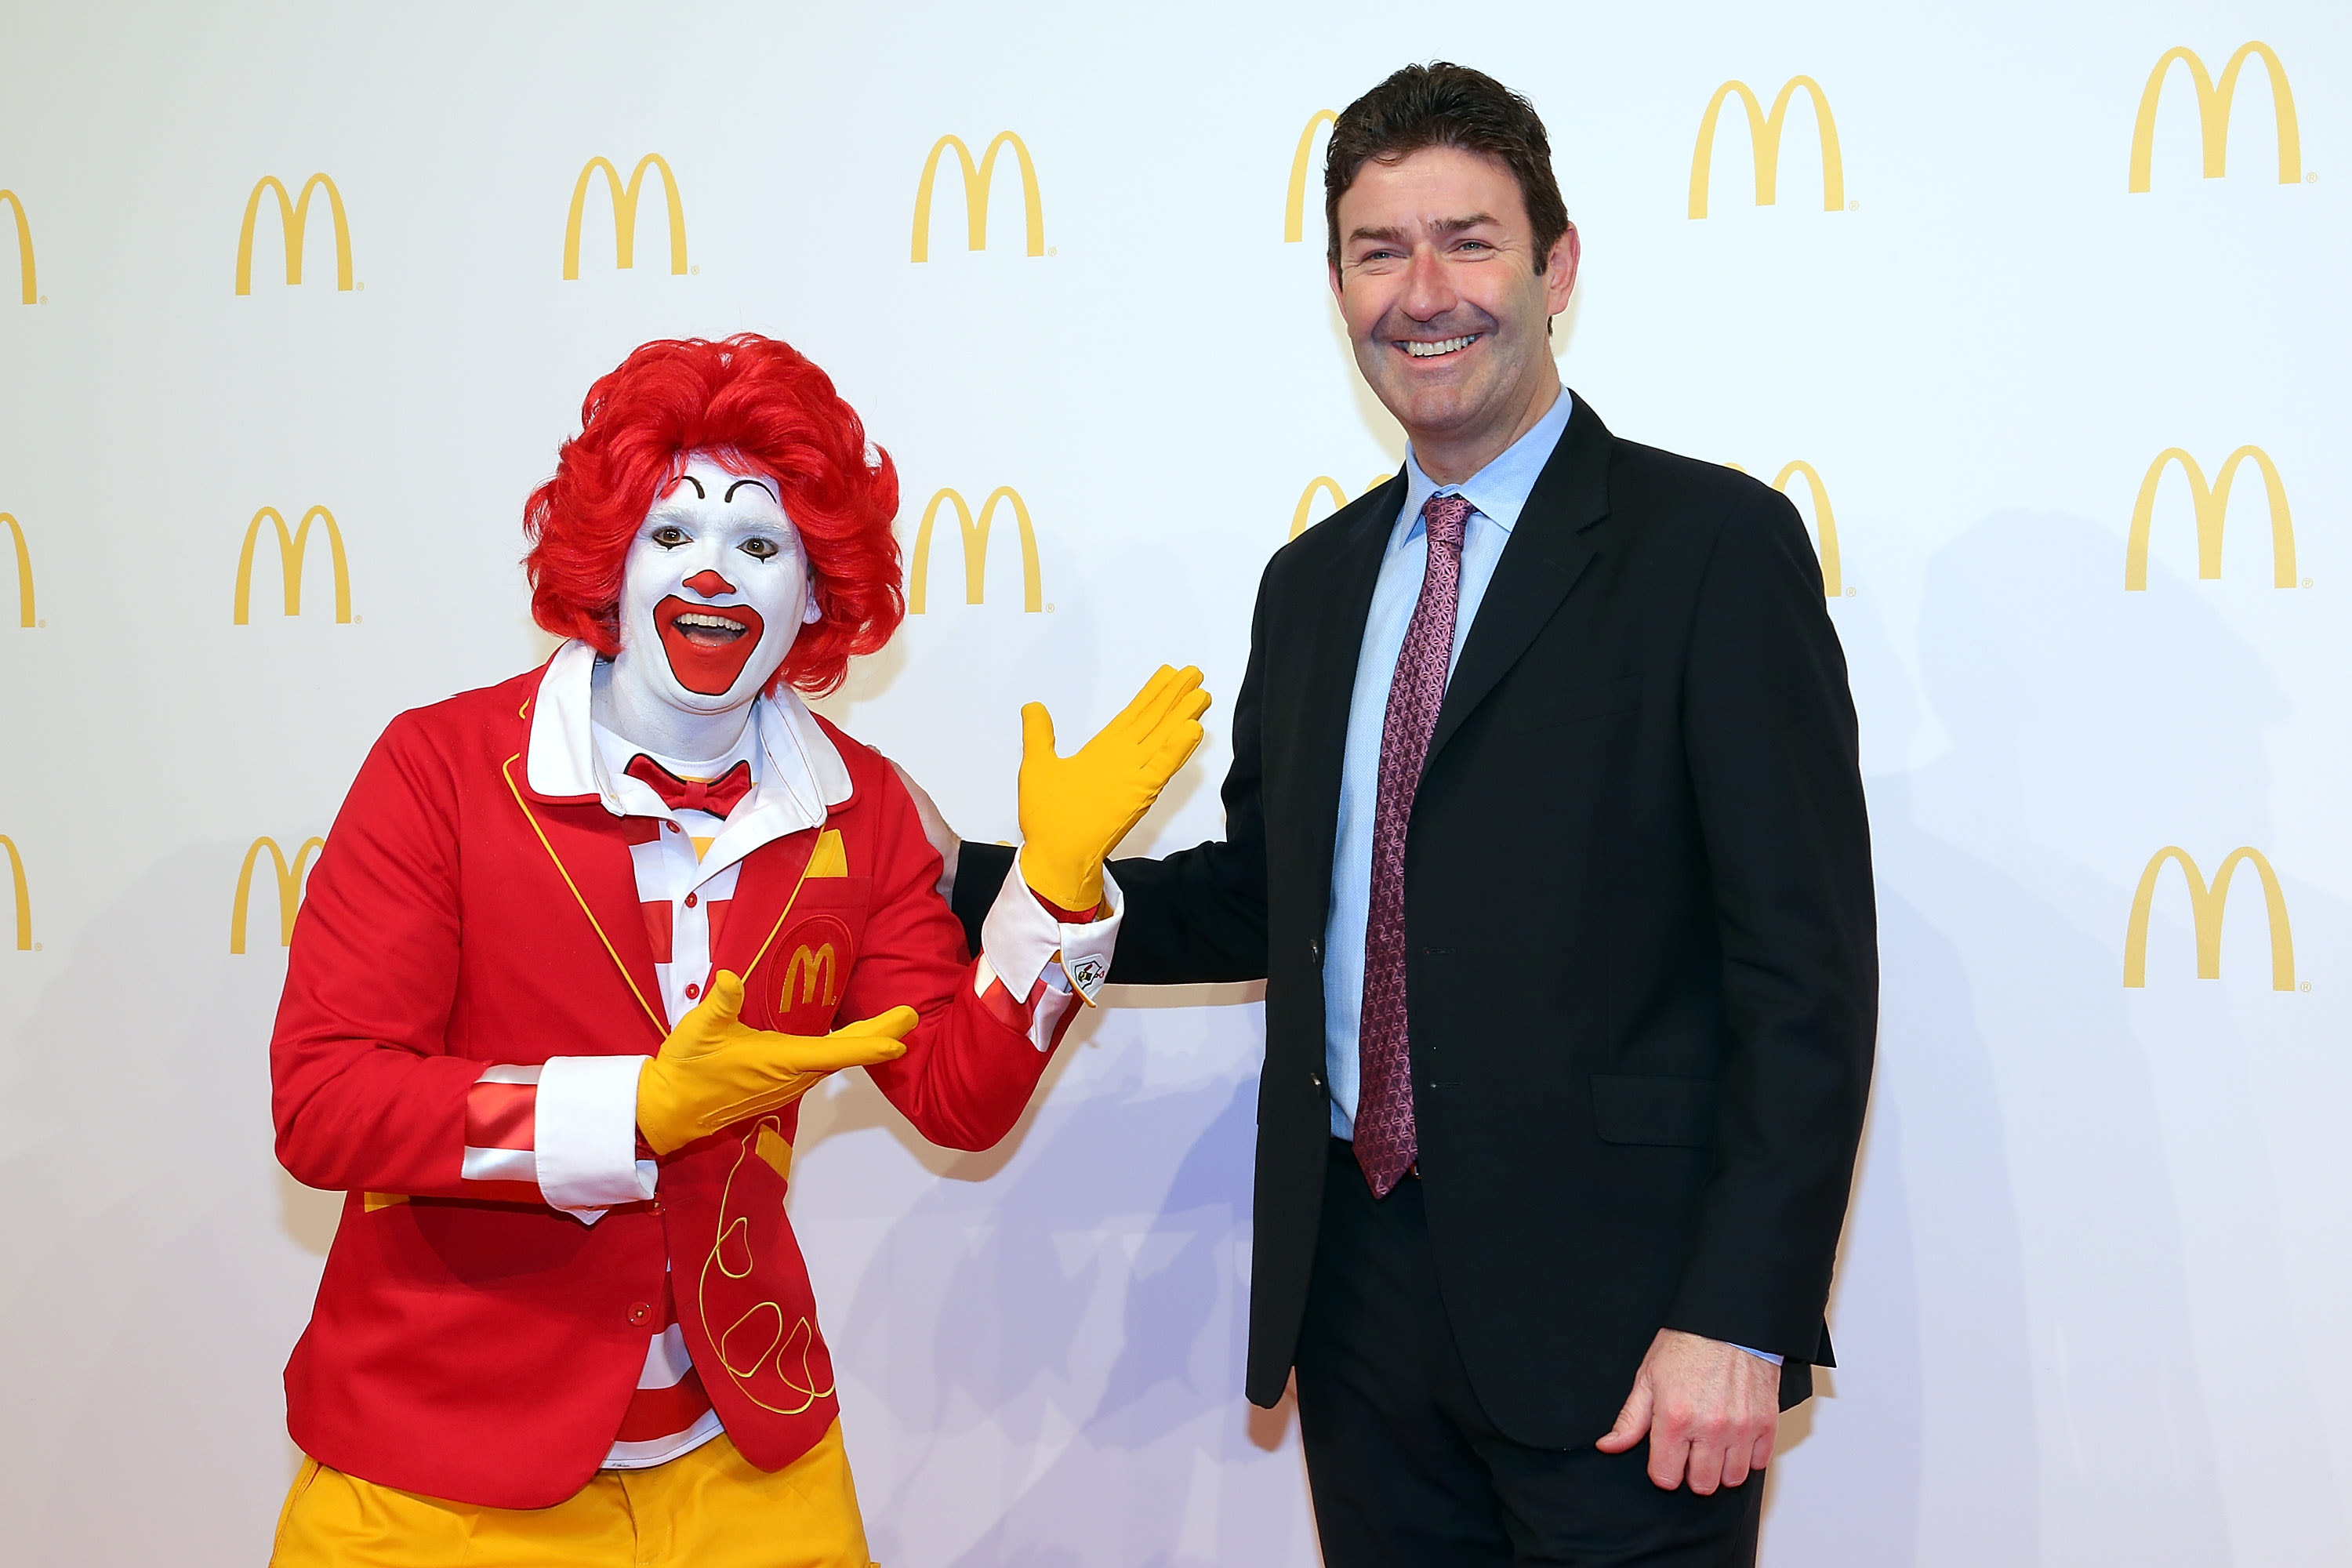 McDonald's wins praise for firing its CEO but reignites scrutiny over worker complaints